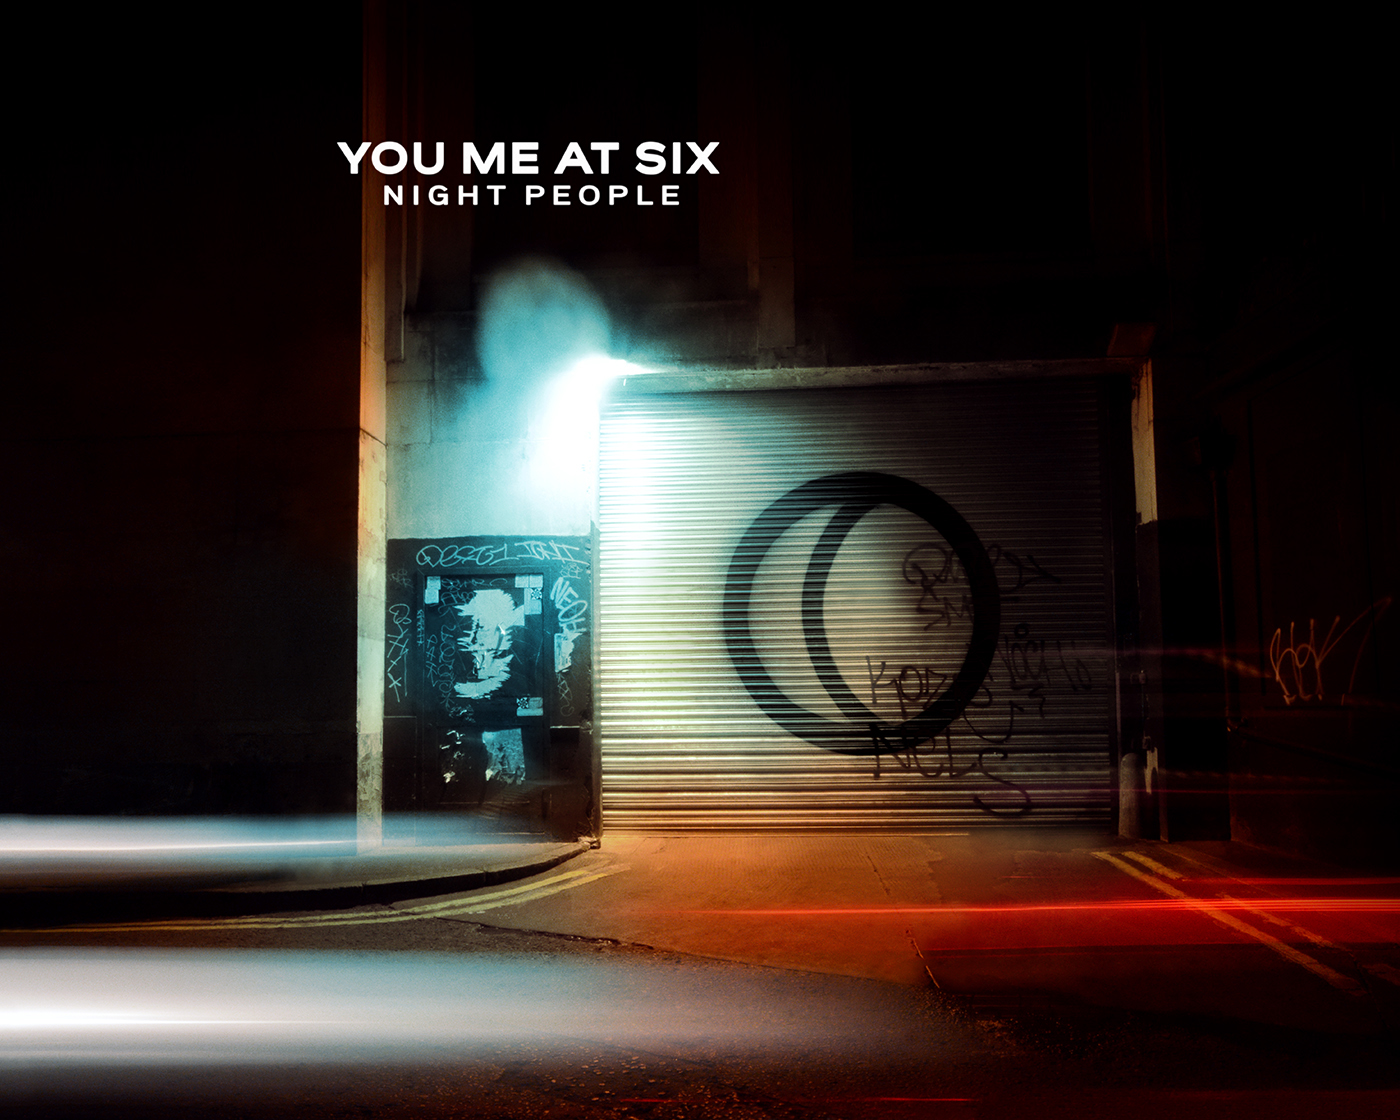 You Me At Six Night People Album Cover Retouching On Behance